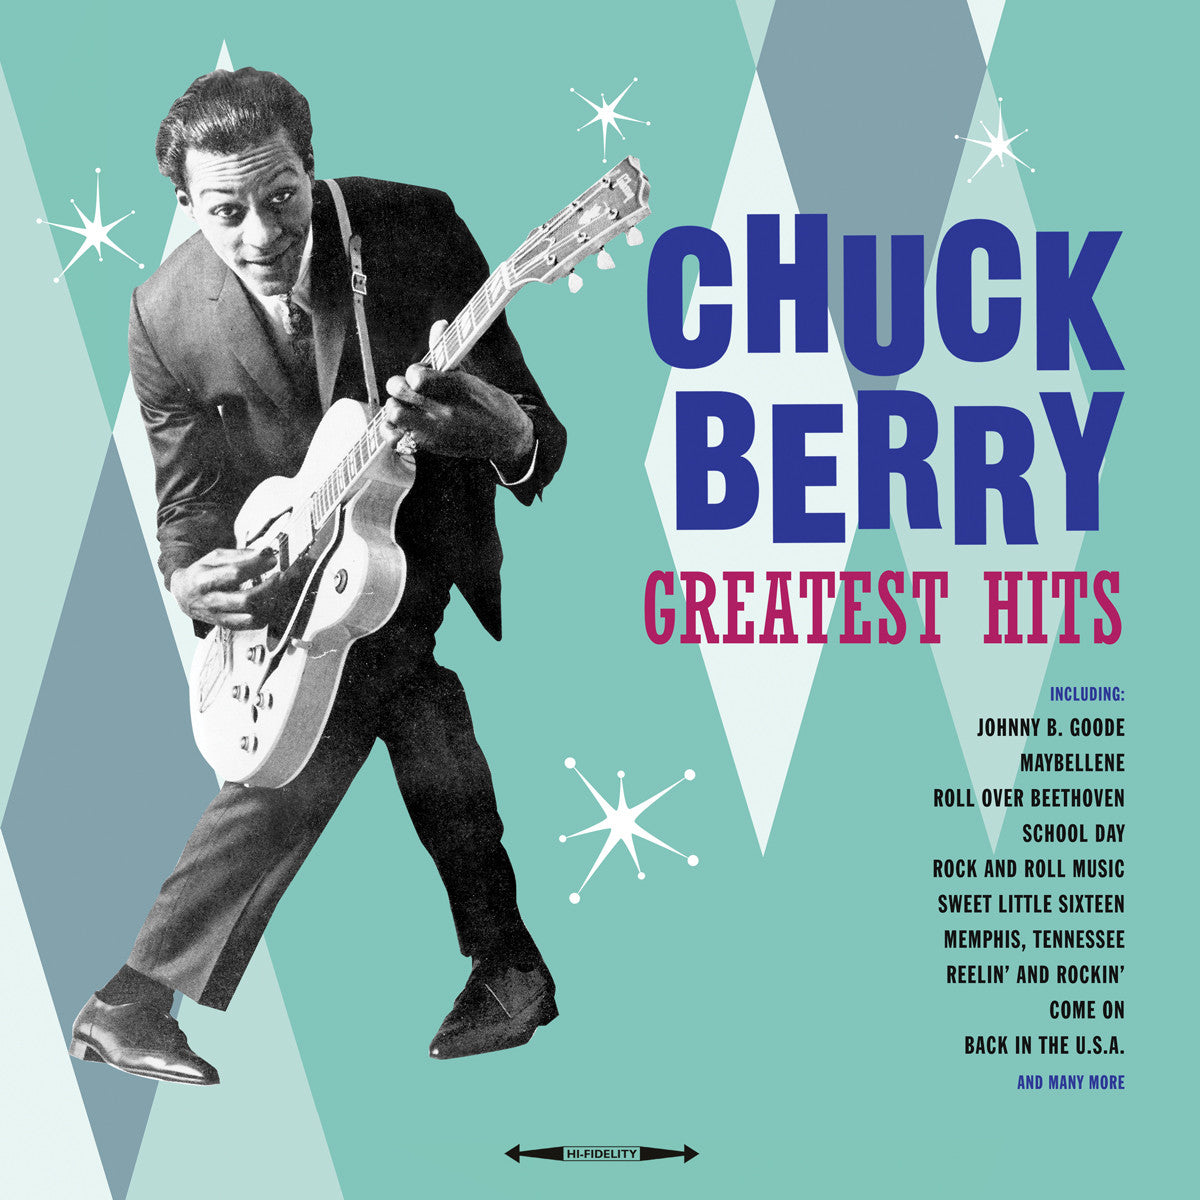 CHUCK BERRY -  GREATEST HITS [180G VINYL LP]